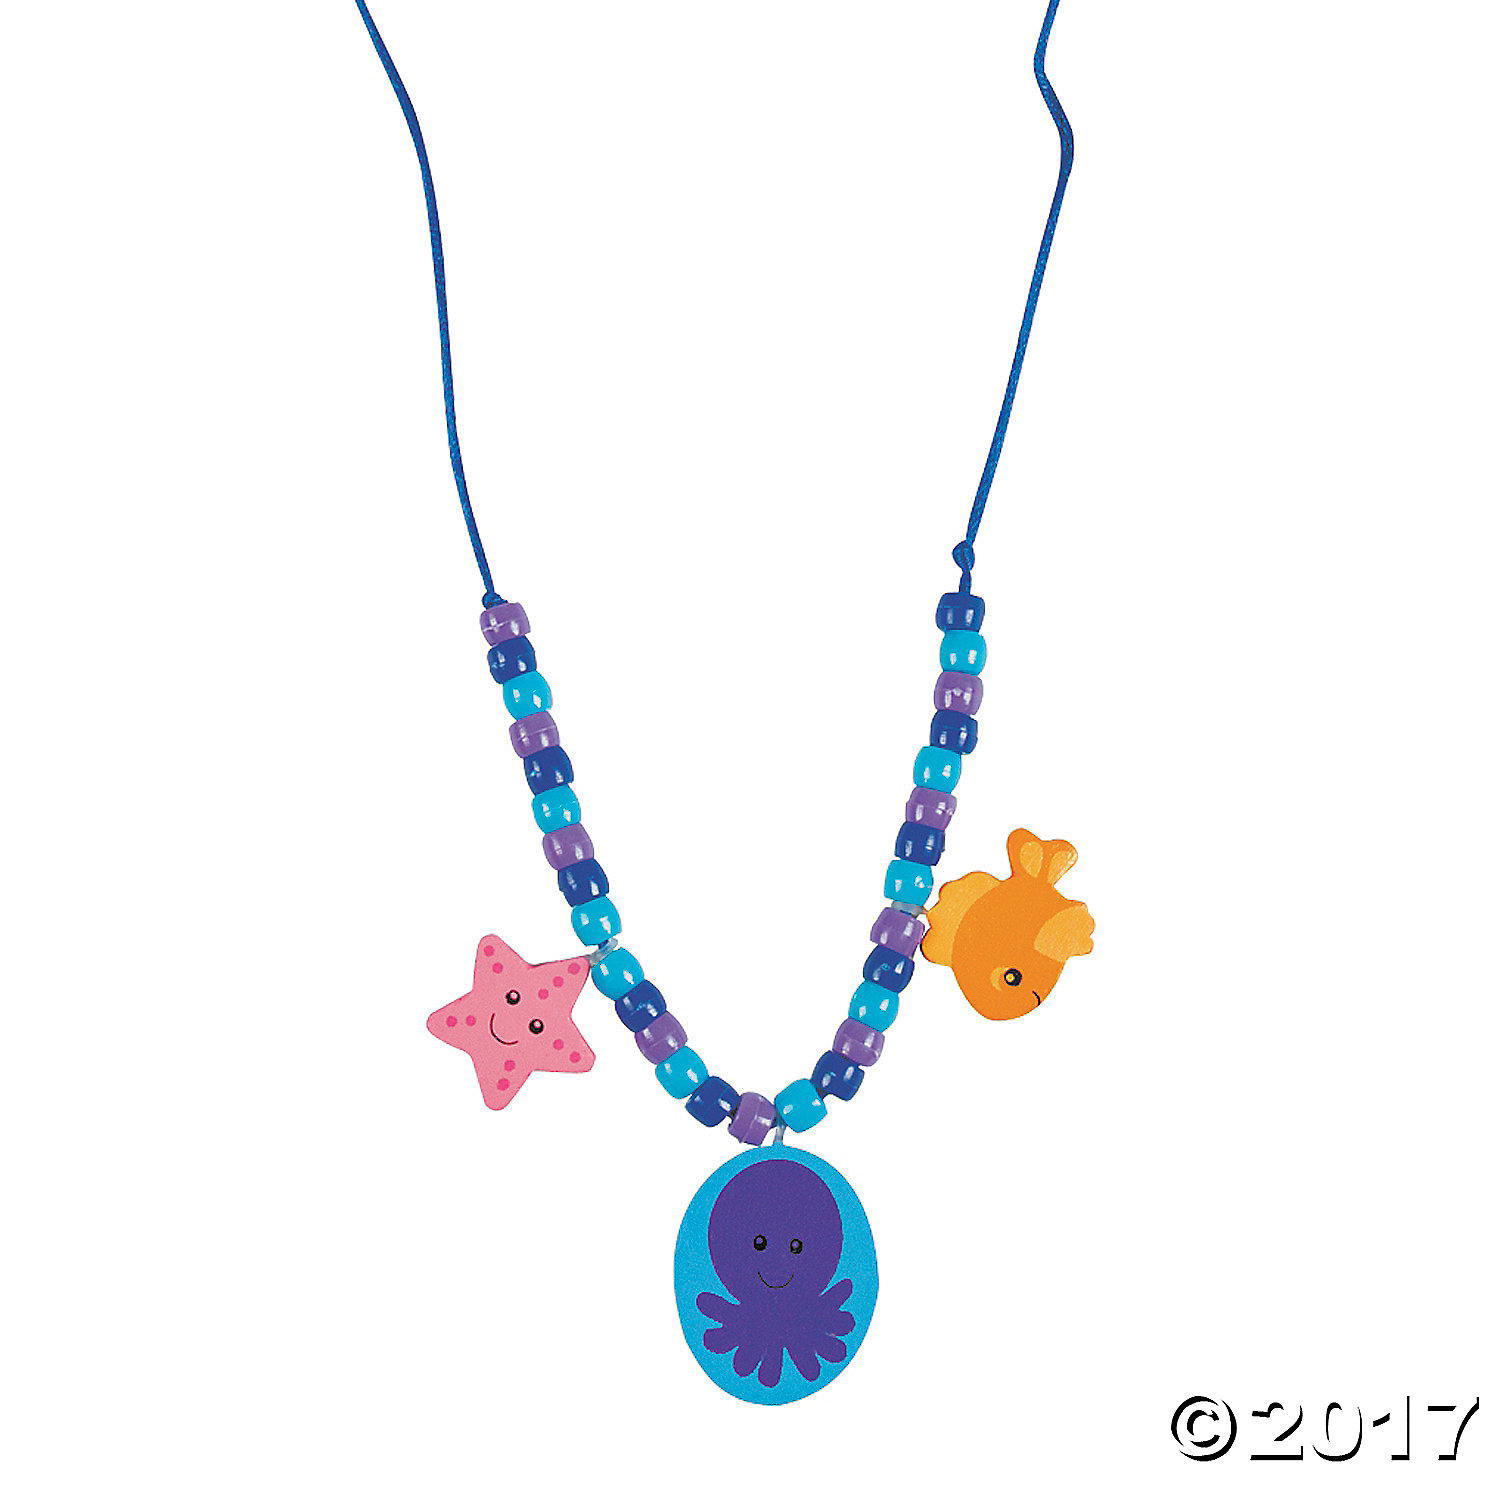 Under The Sea Beaded Necklace Craft Kit-12Pk